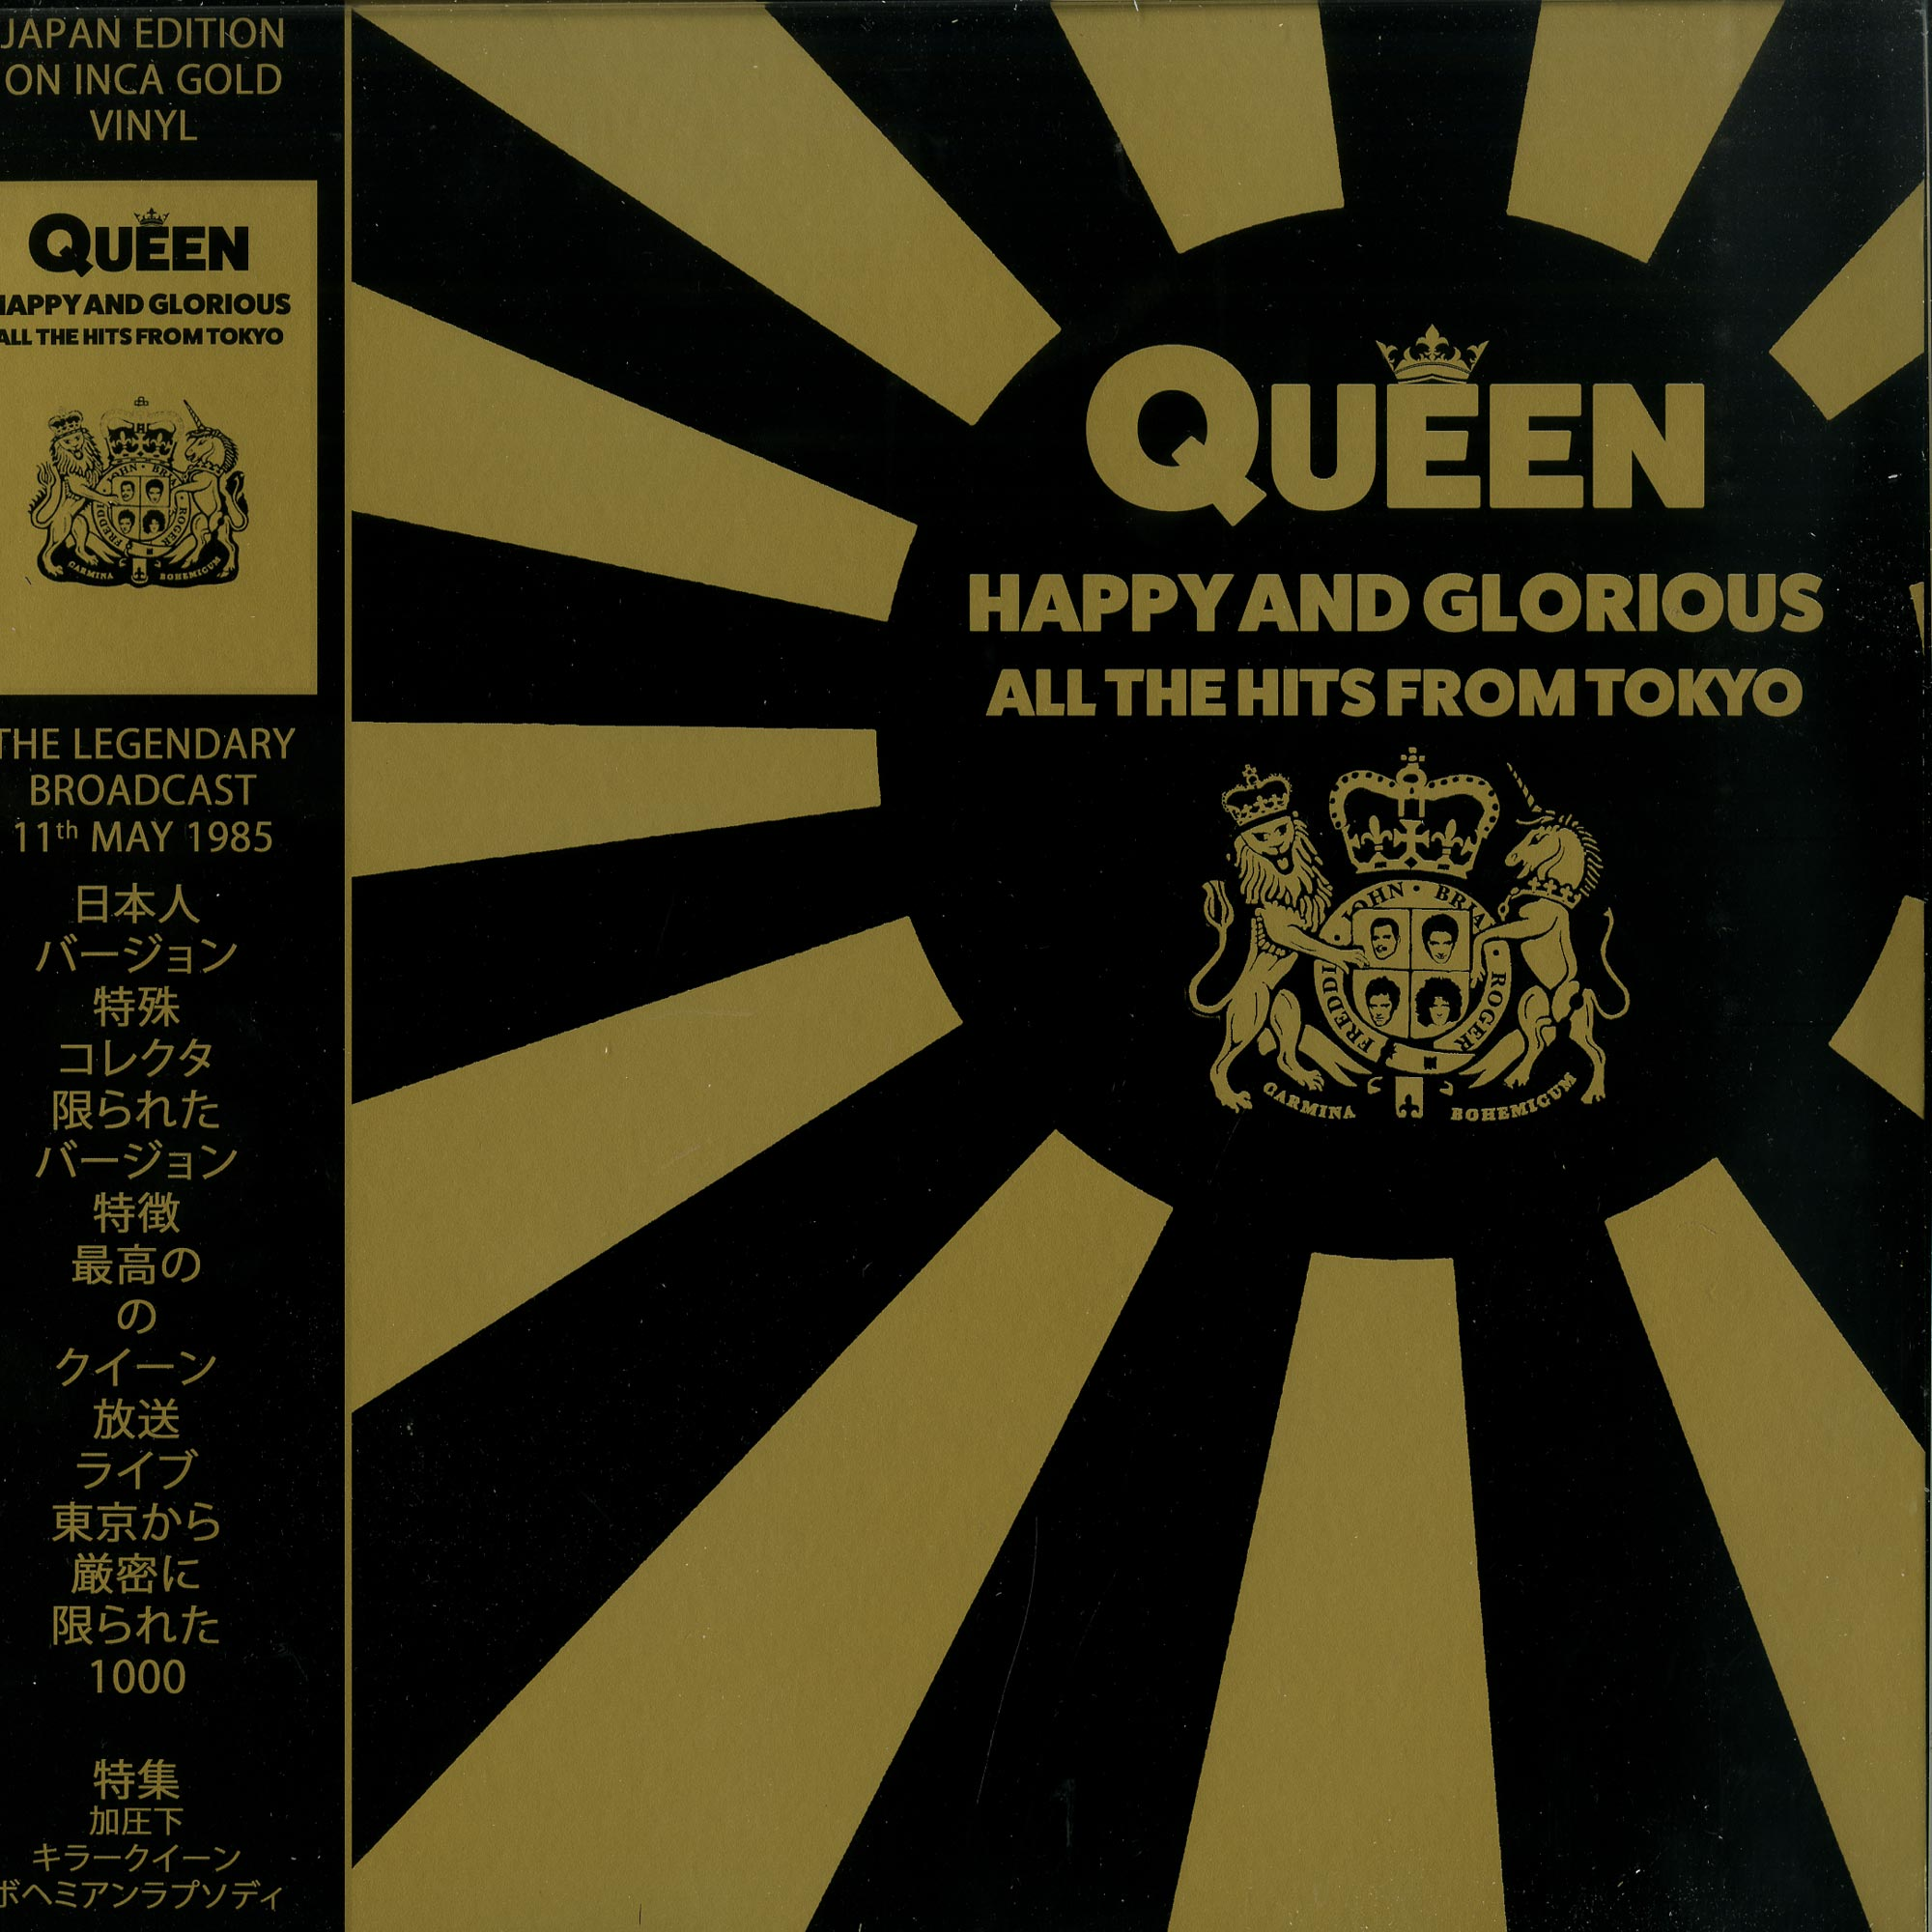 Queen - HAPPY AND GLORIOUS - ALL THE HITS FROM TOKYO